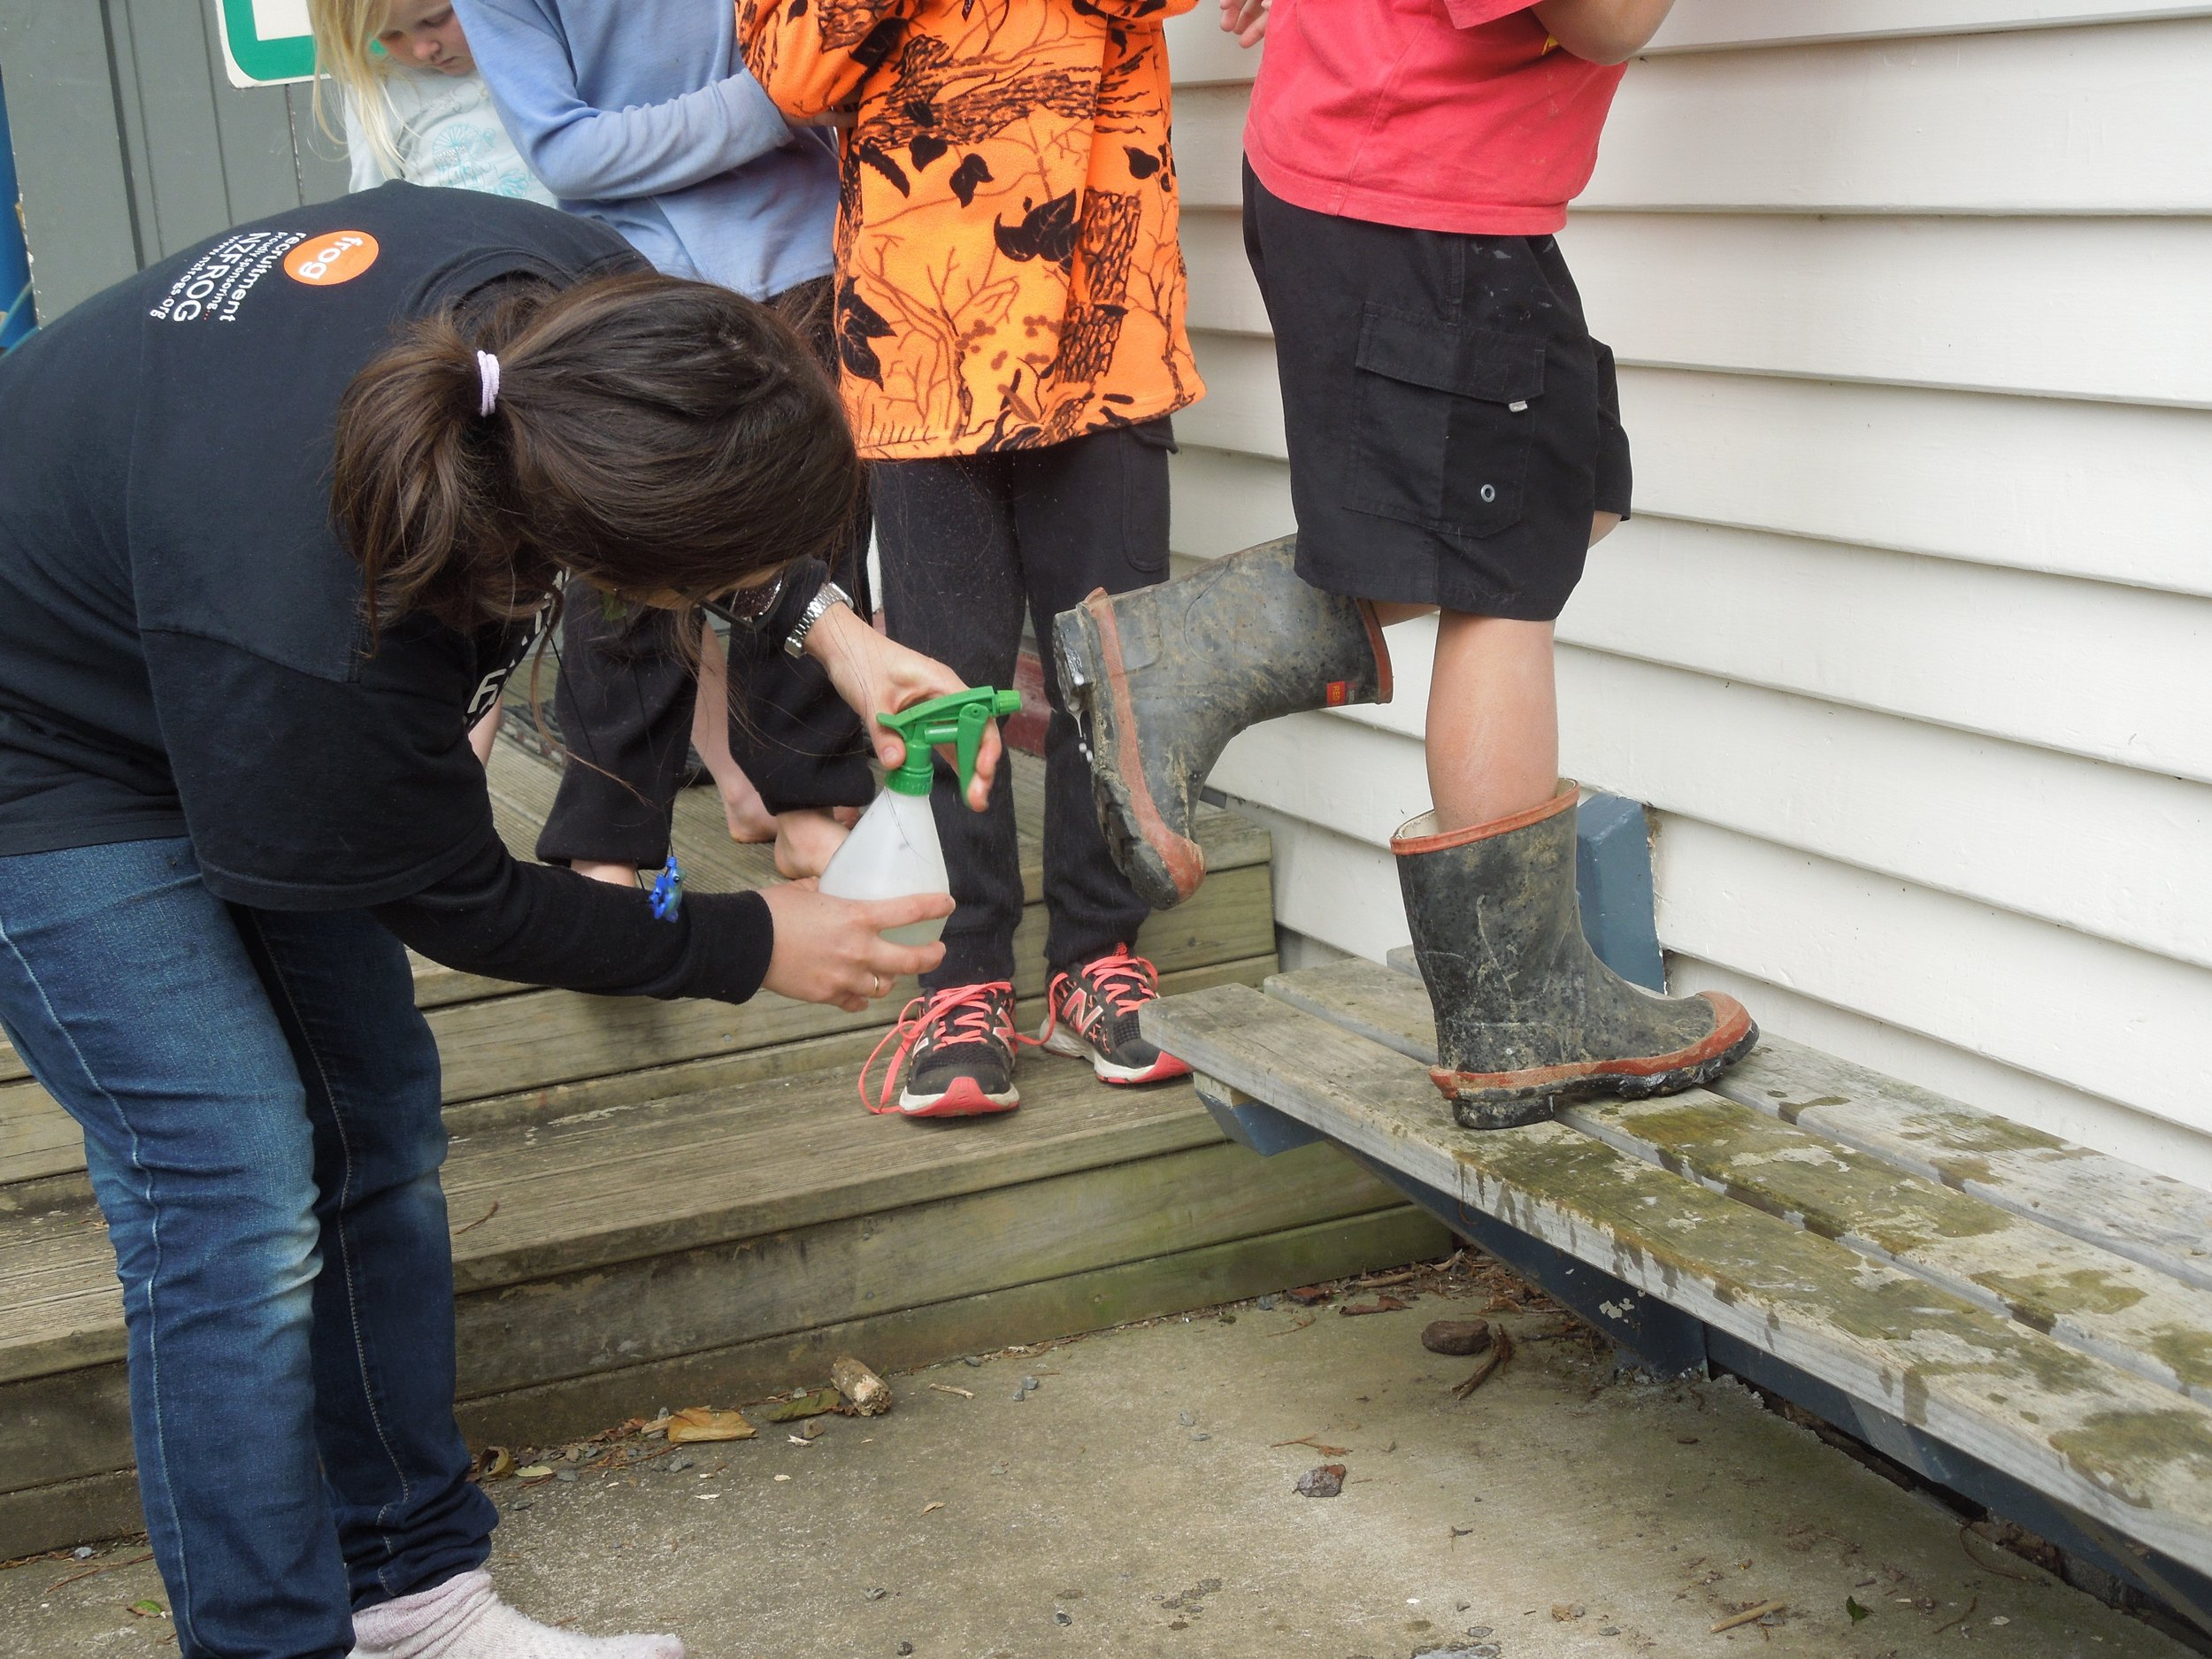 Teaching how to clean shoes to avoid amphibian diseases spread